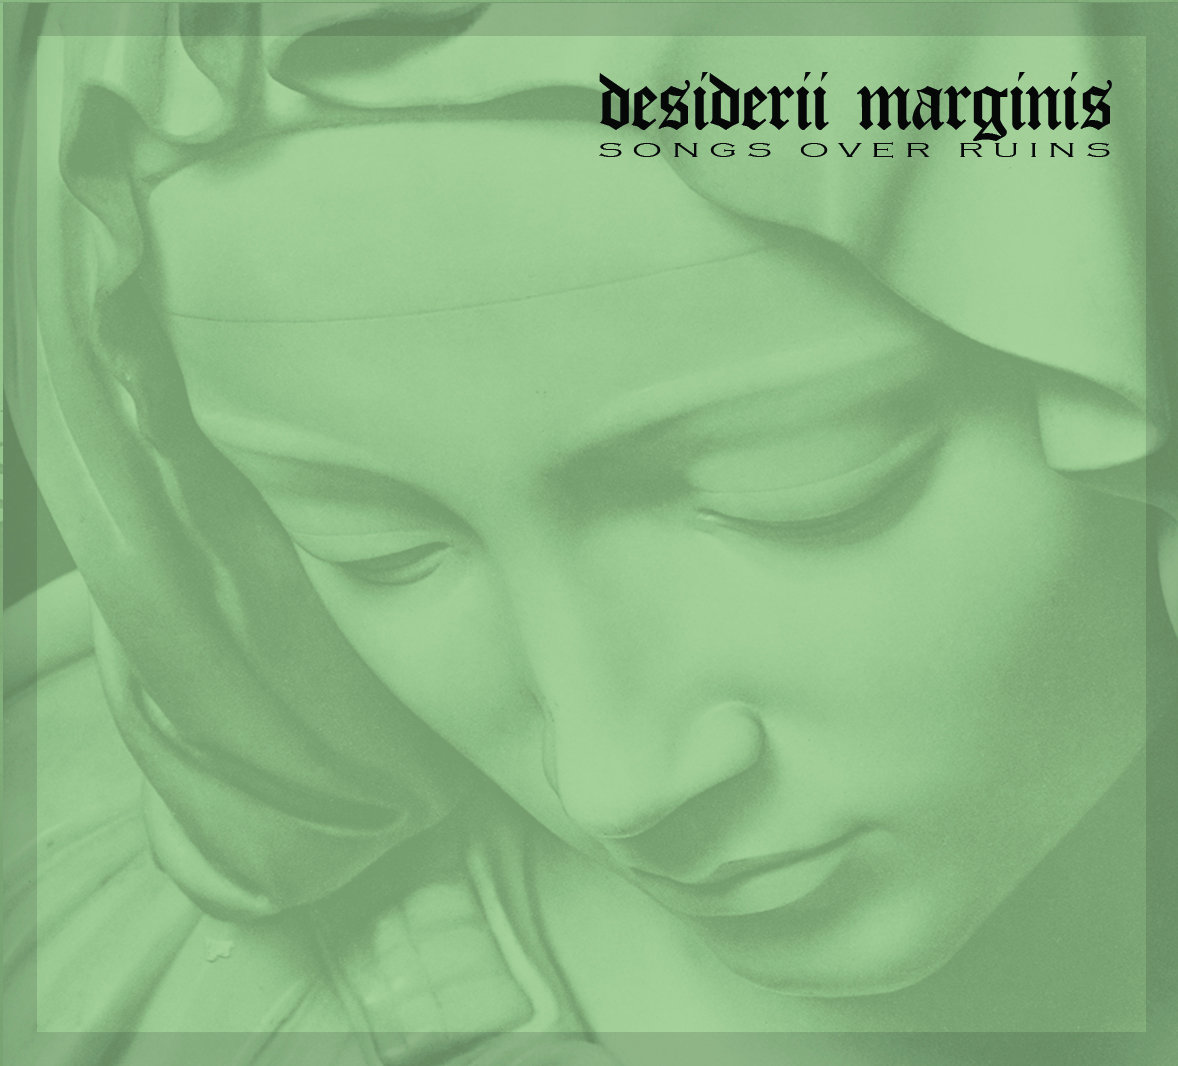 Desiderii Marginis: Songs Over Ruins '17 【予約受付中】